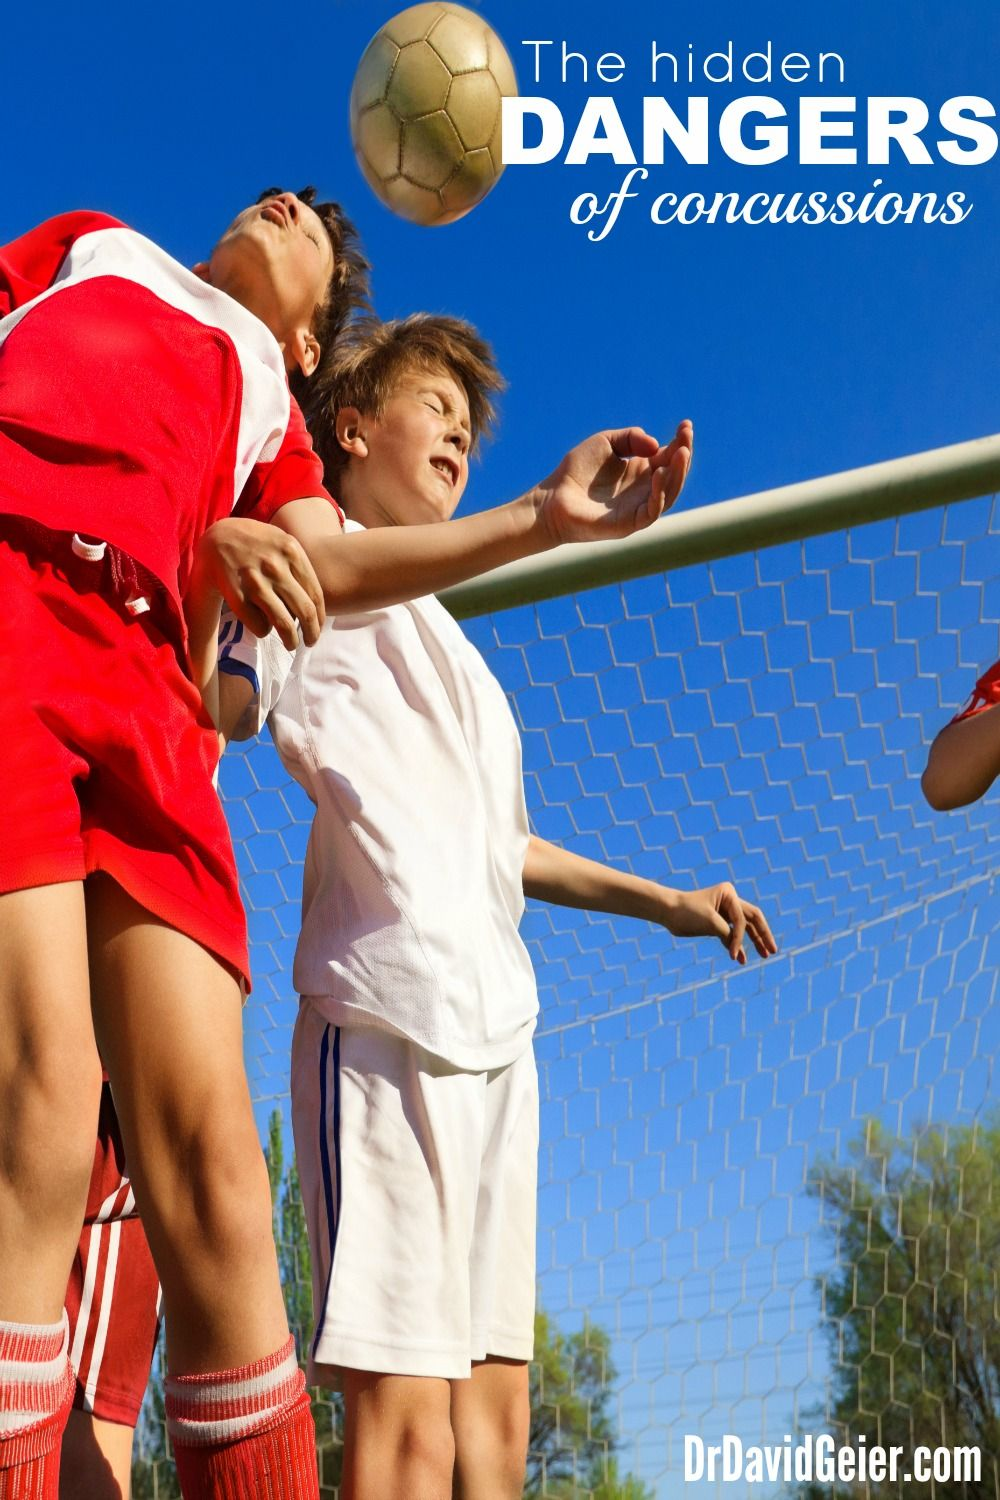 The hidden dangers of concussions from